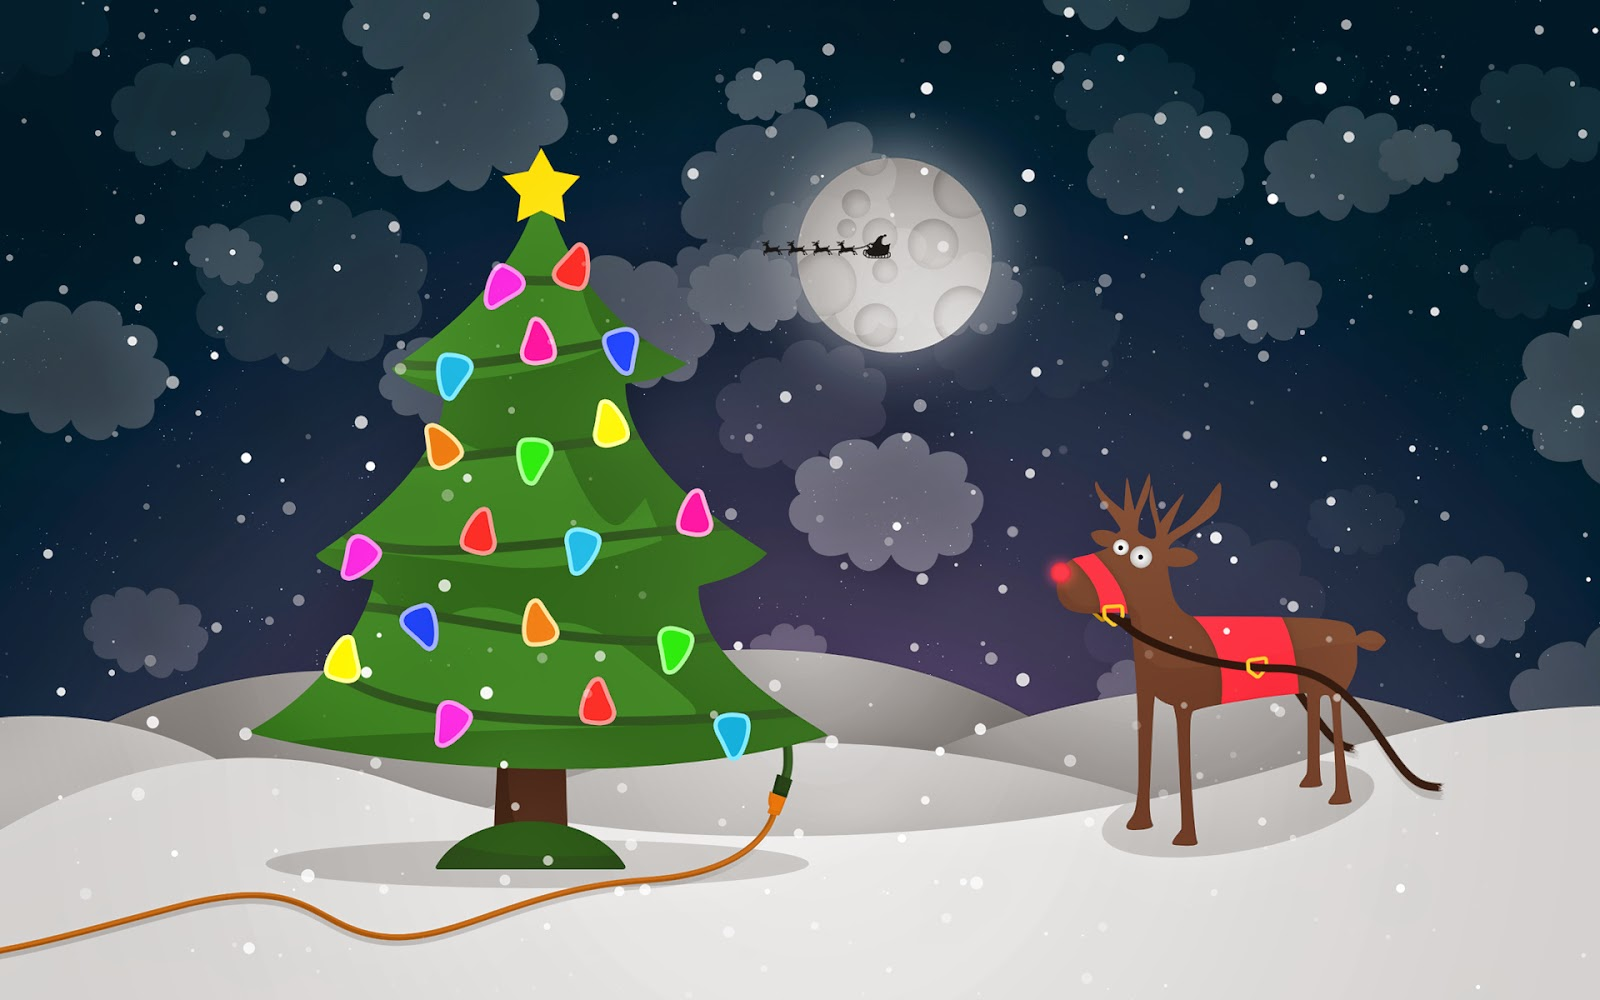 Cartoon-images-with-Christmas-theme-drawings-for-kids-children-free-download.jpg